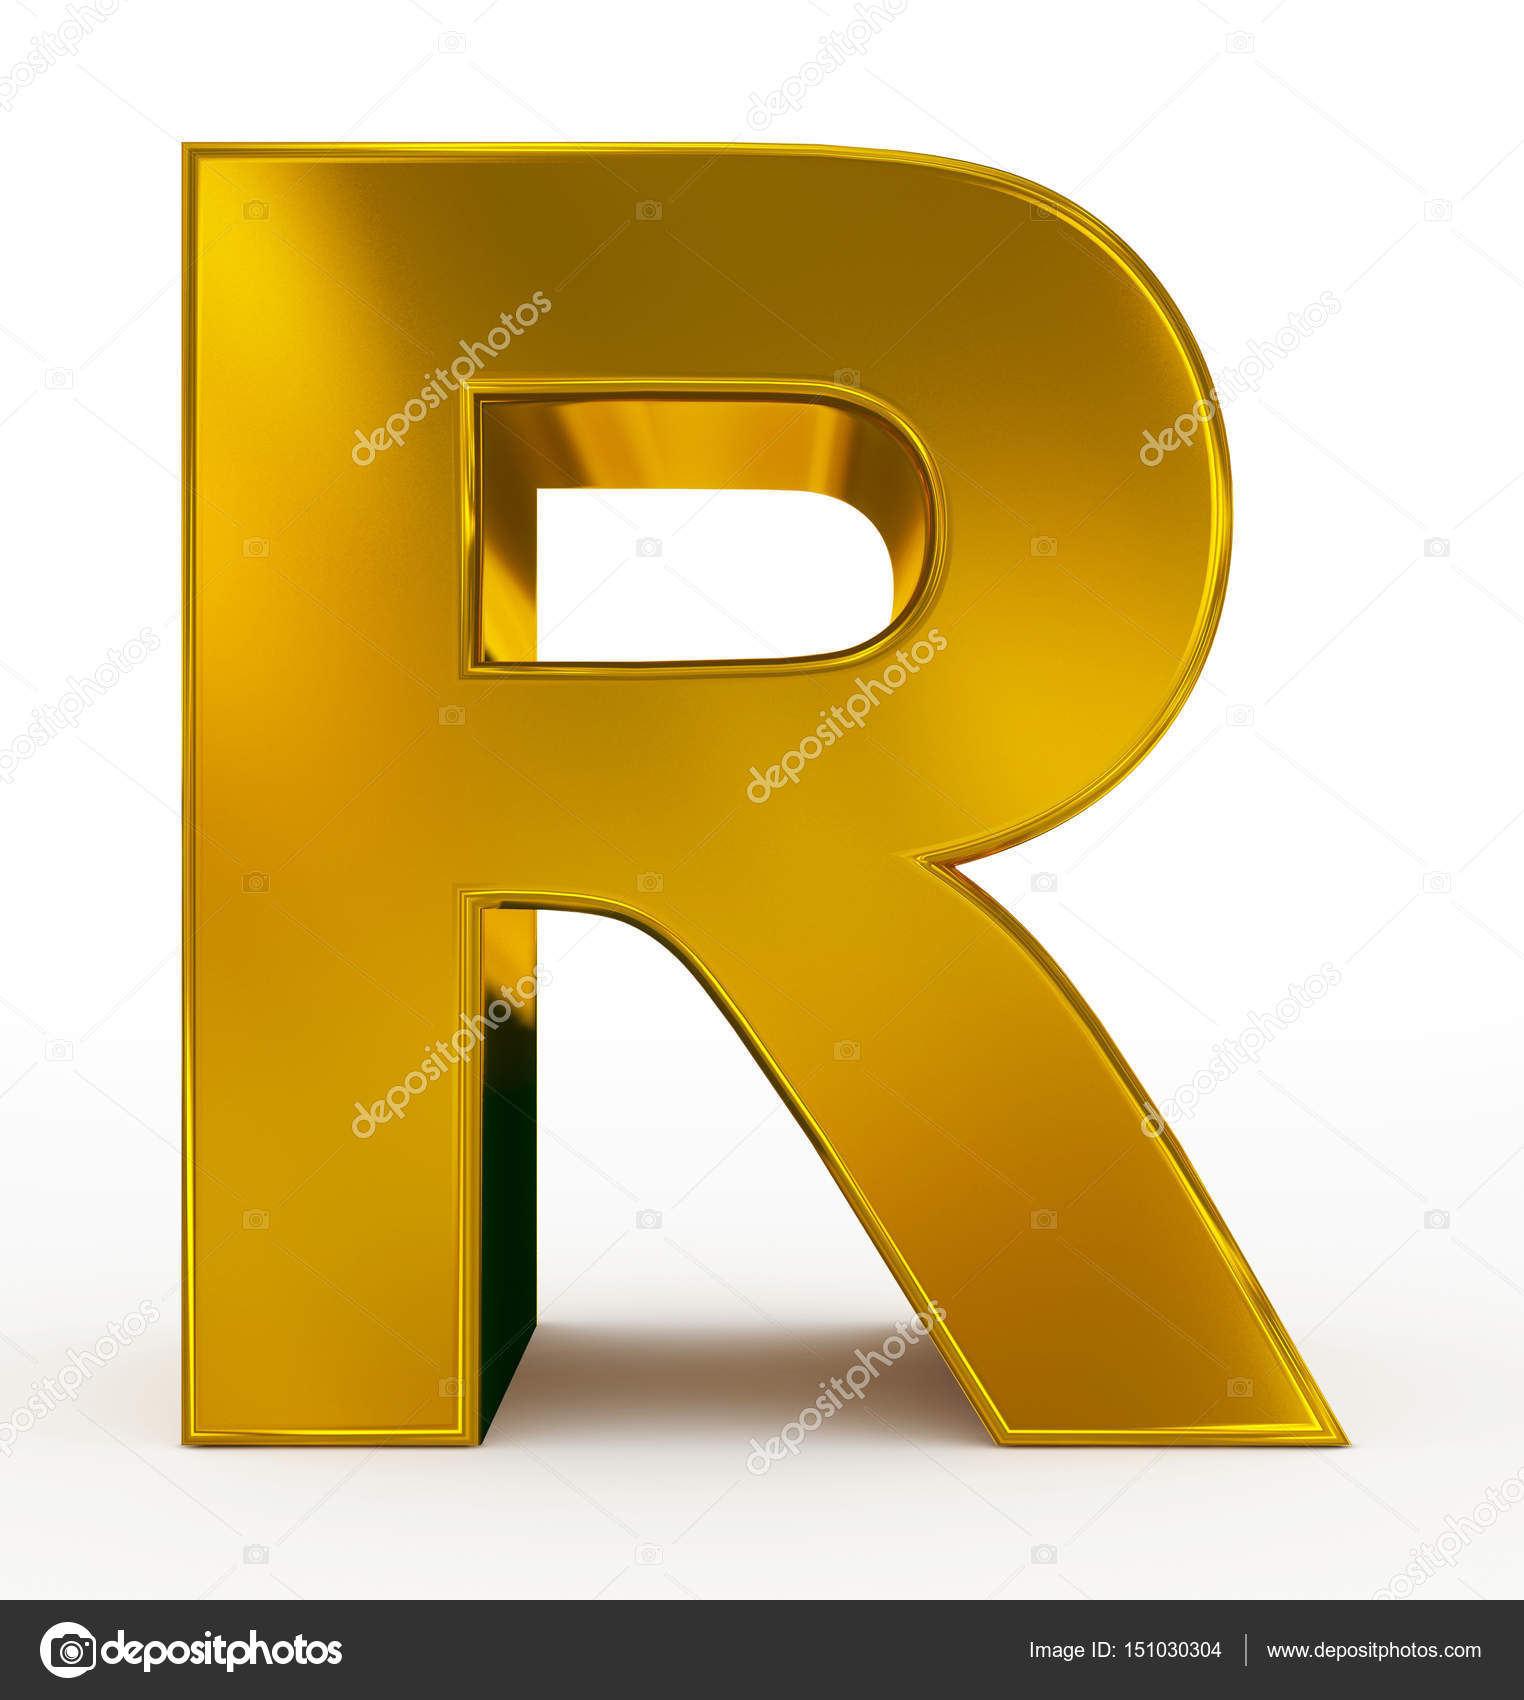 Stock Photo Letter R 3d Golden Isolated on Letter Y Video